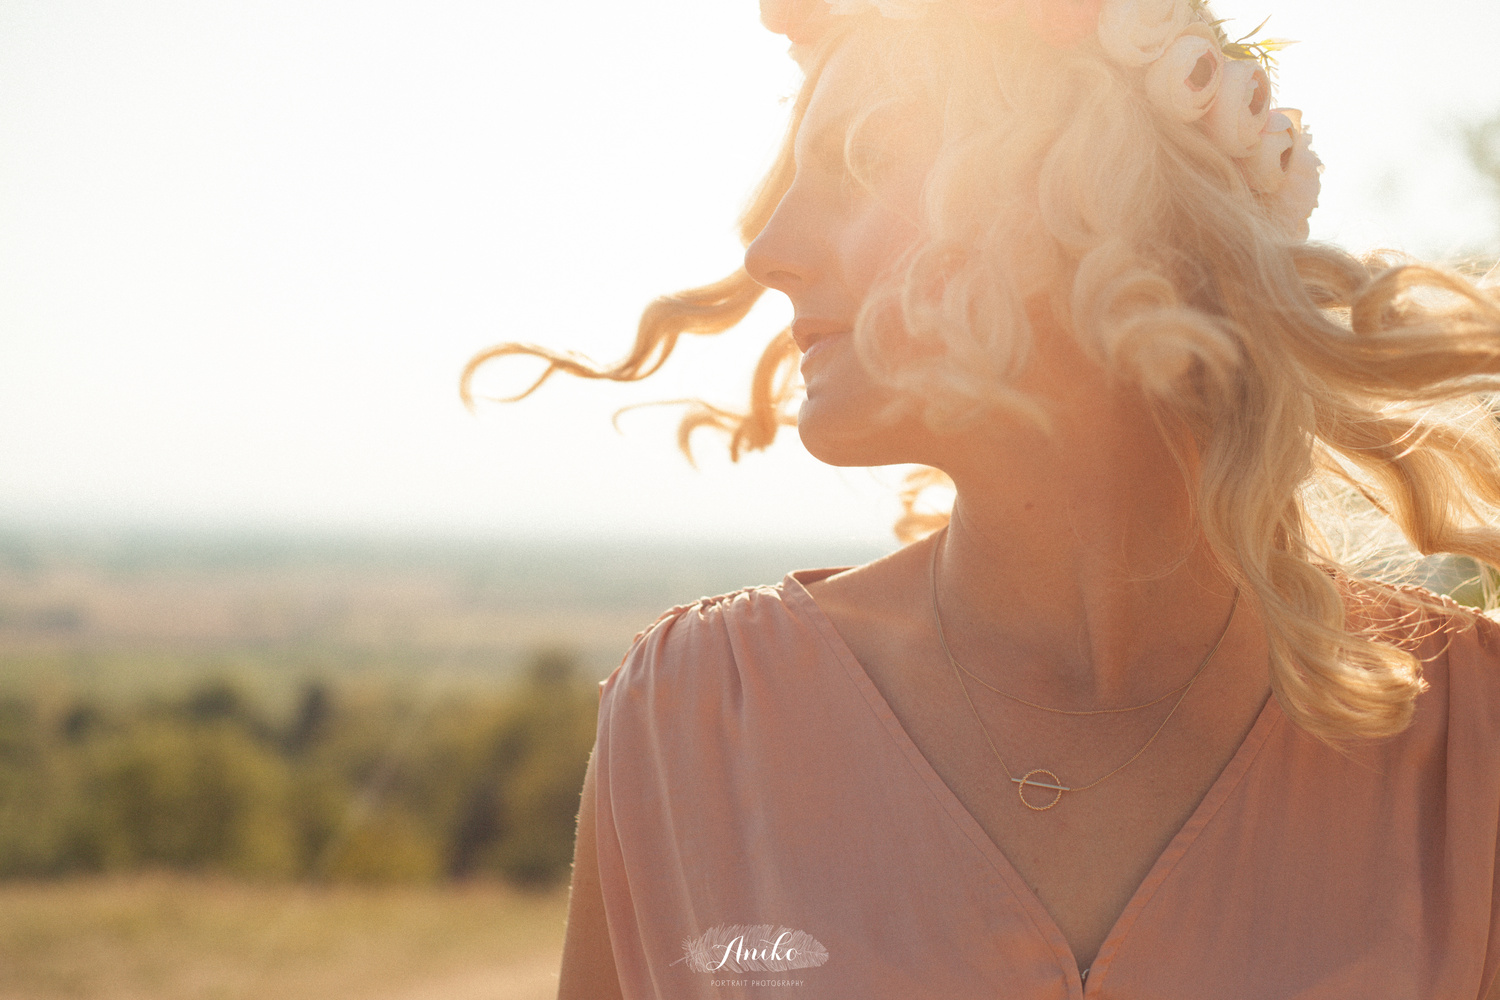 Untitled 6 by Aniko Portrait Photography